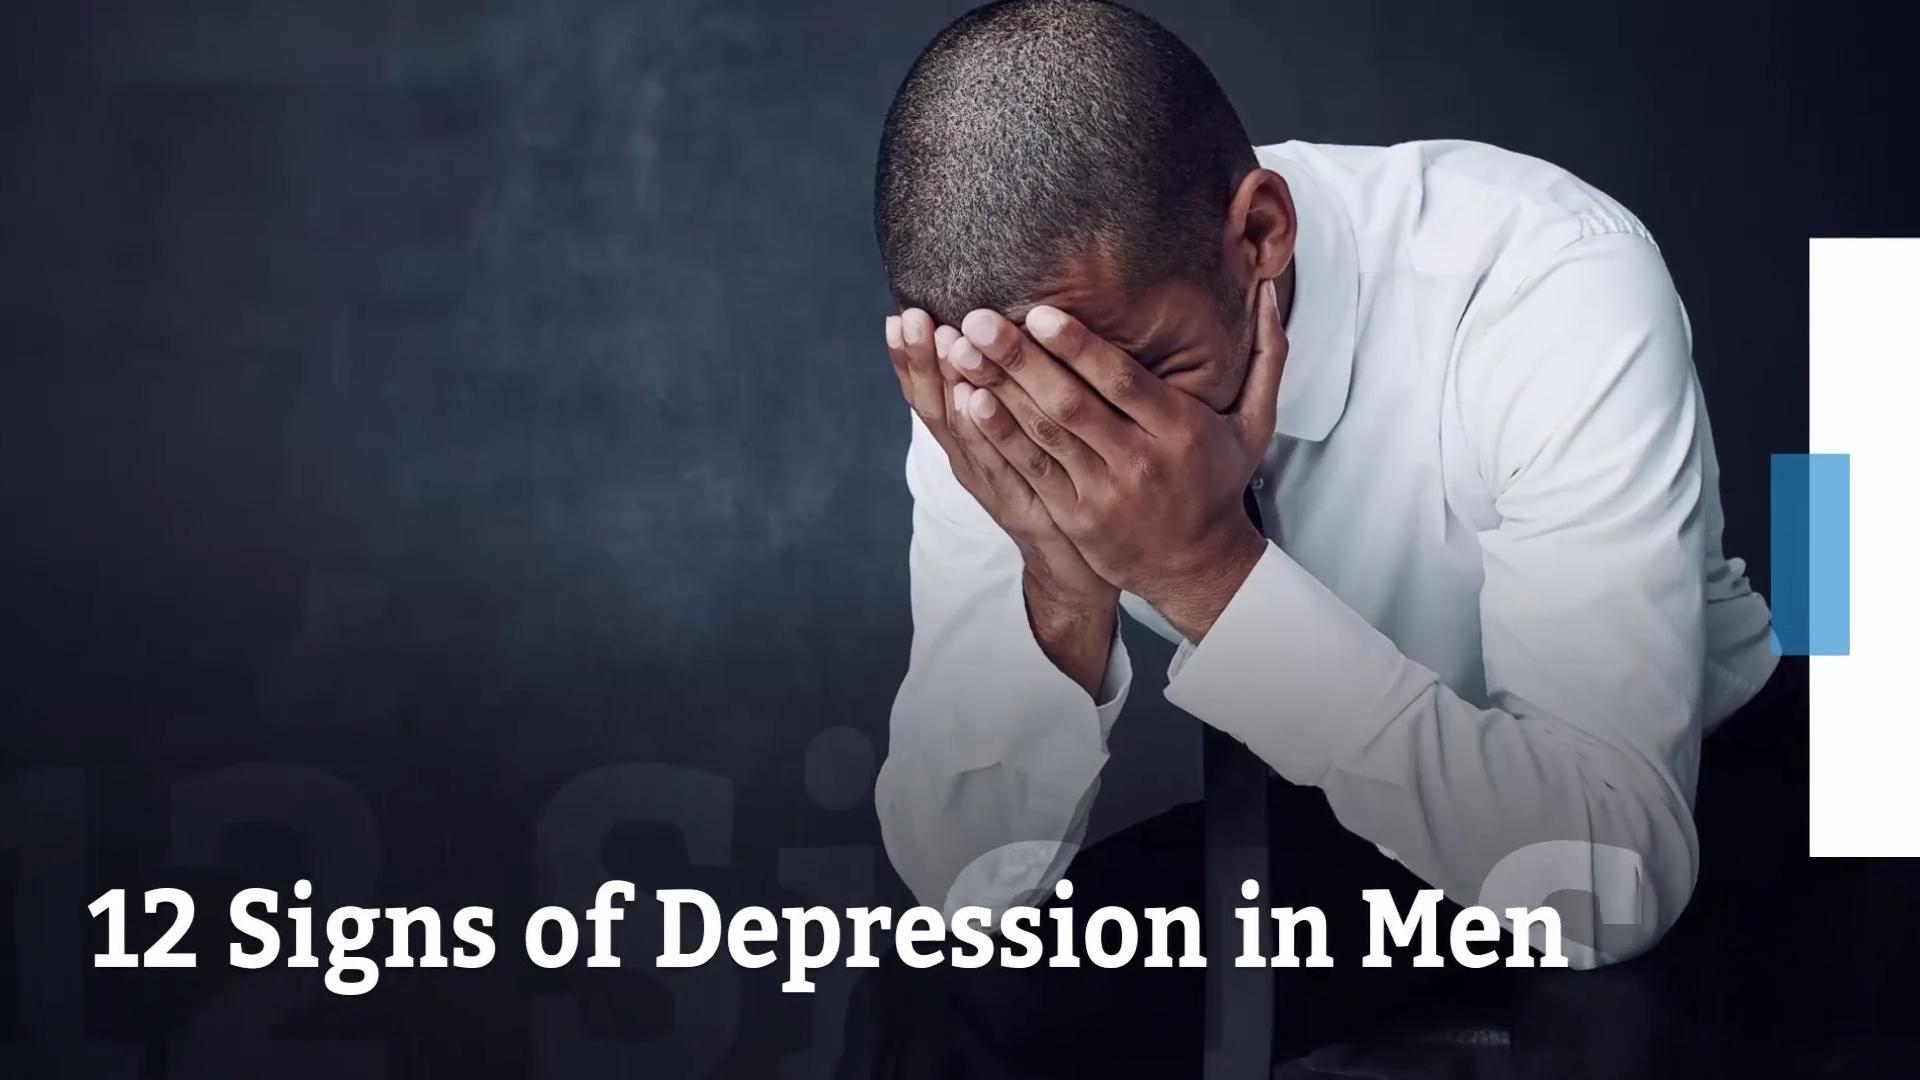 depression in men Anxiety and depression in men are common and treatable anxiety and depression are medical conditions, not weaknesses, and effective treatments are available taking action may not be as hard as you think it's important to seek support for anxiety and depression early – the sooner the better .